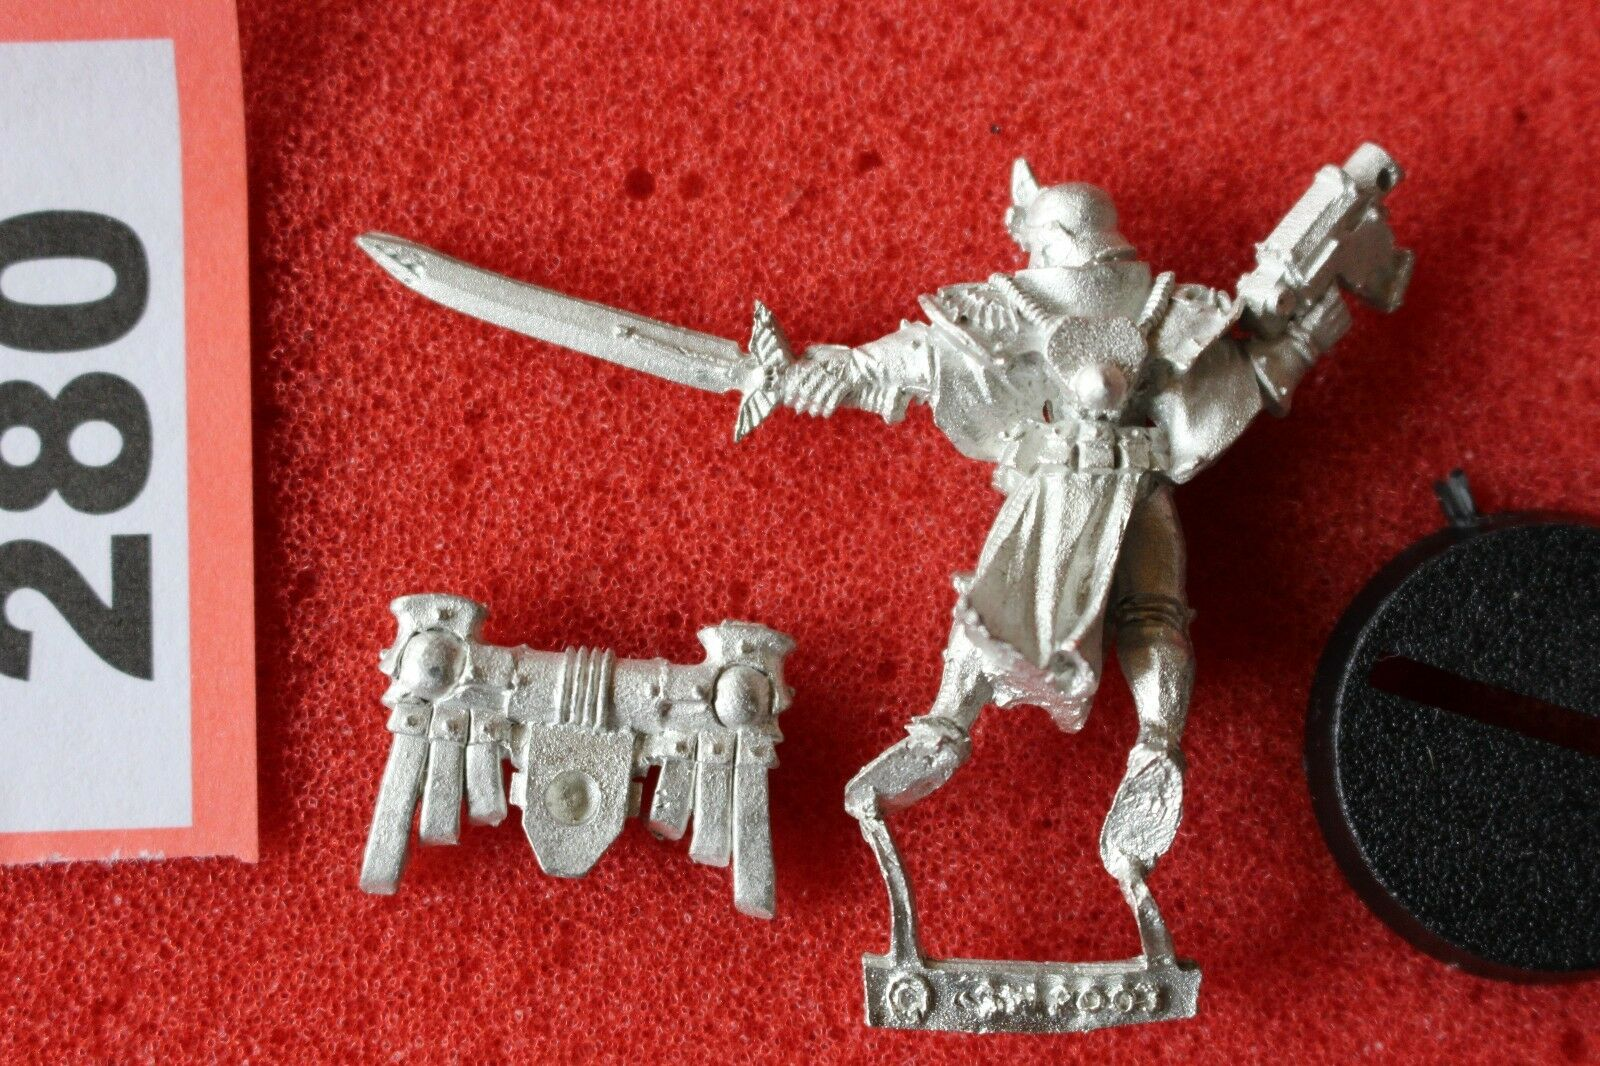 Games Workshop Workshop Workshop Warhammer 40k Sisters of Battle Seraphim Superior Power Sword New ac188f